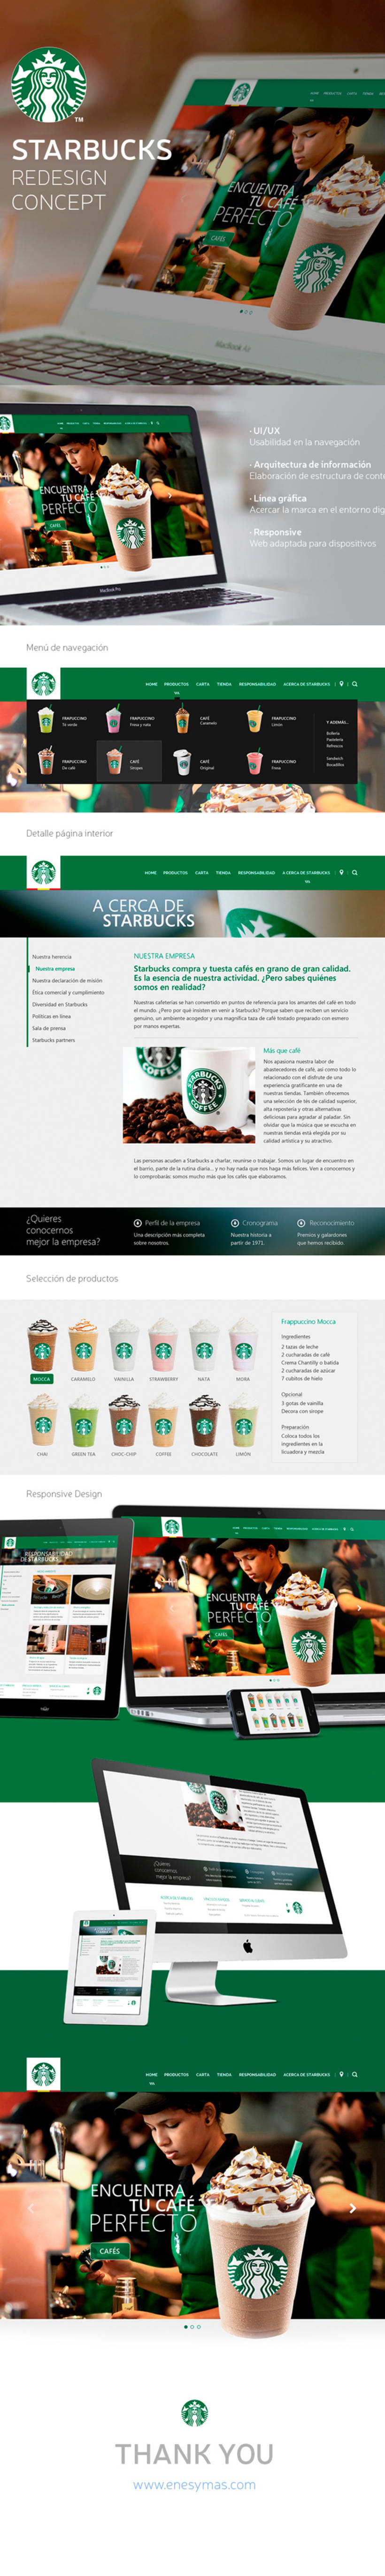 Starbucks Redesign 0